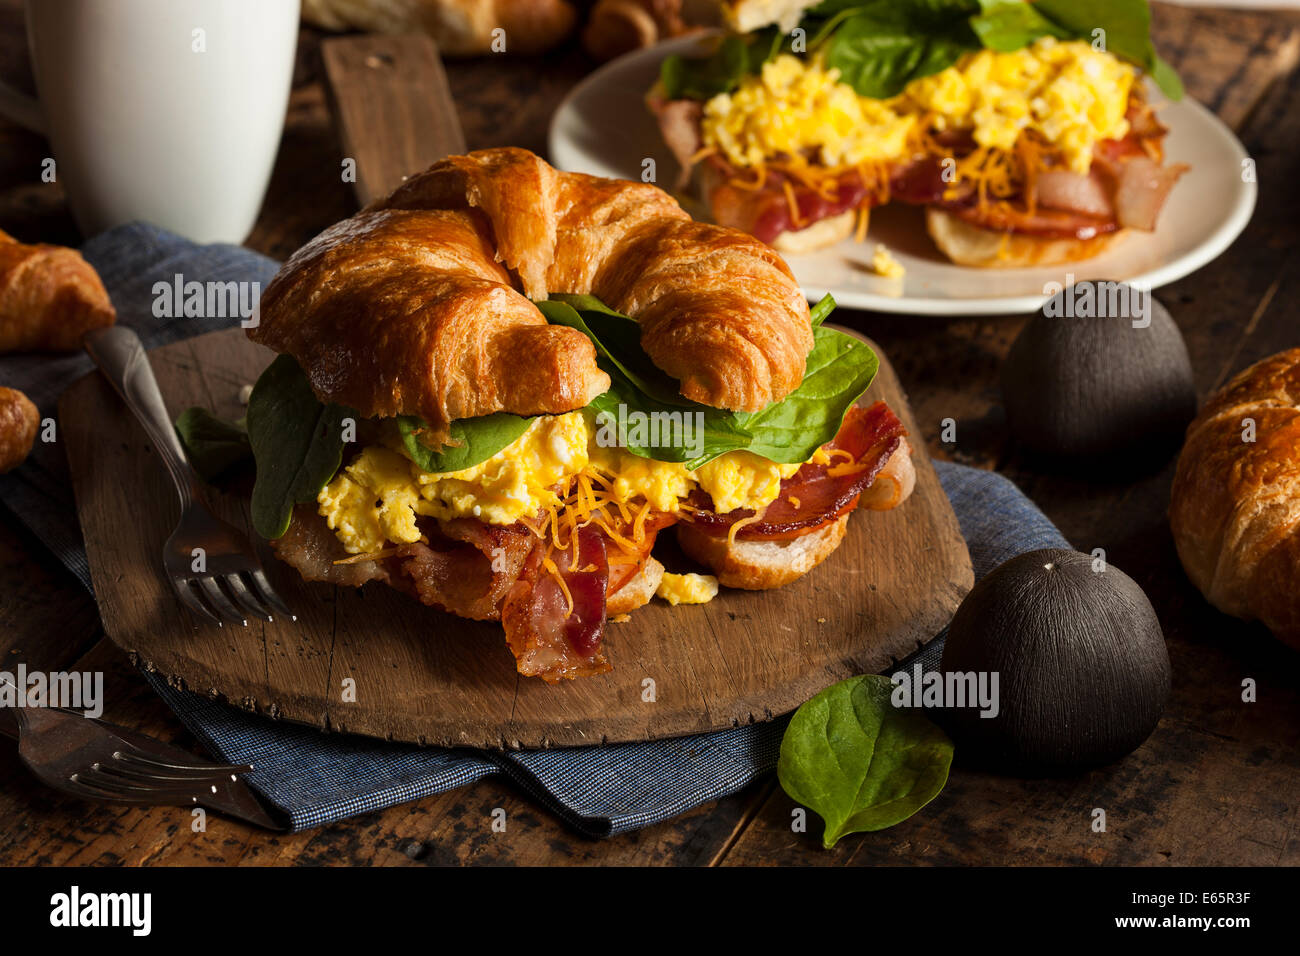 Ham and Cheese Egg Breakfast Sandwich on a Croissant - Stock Image